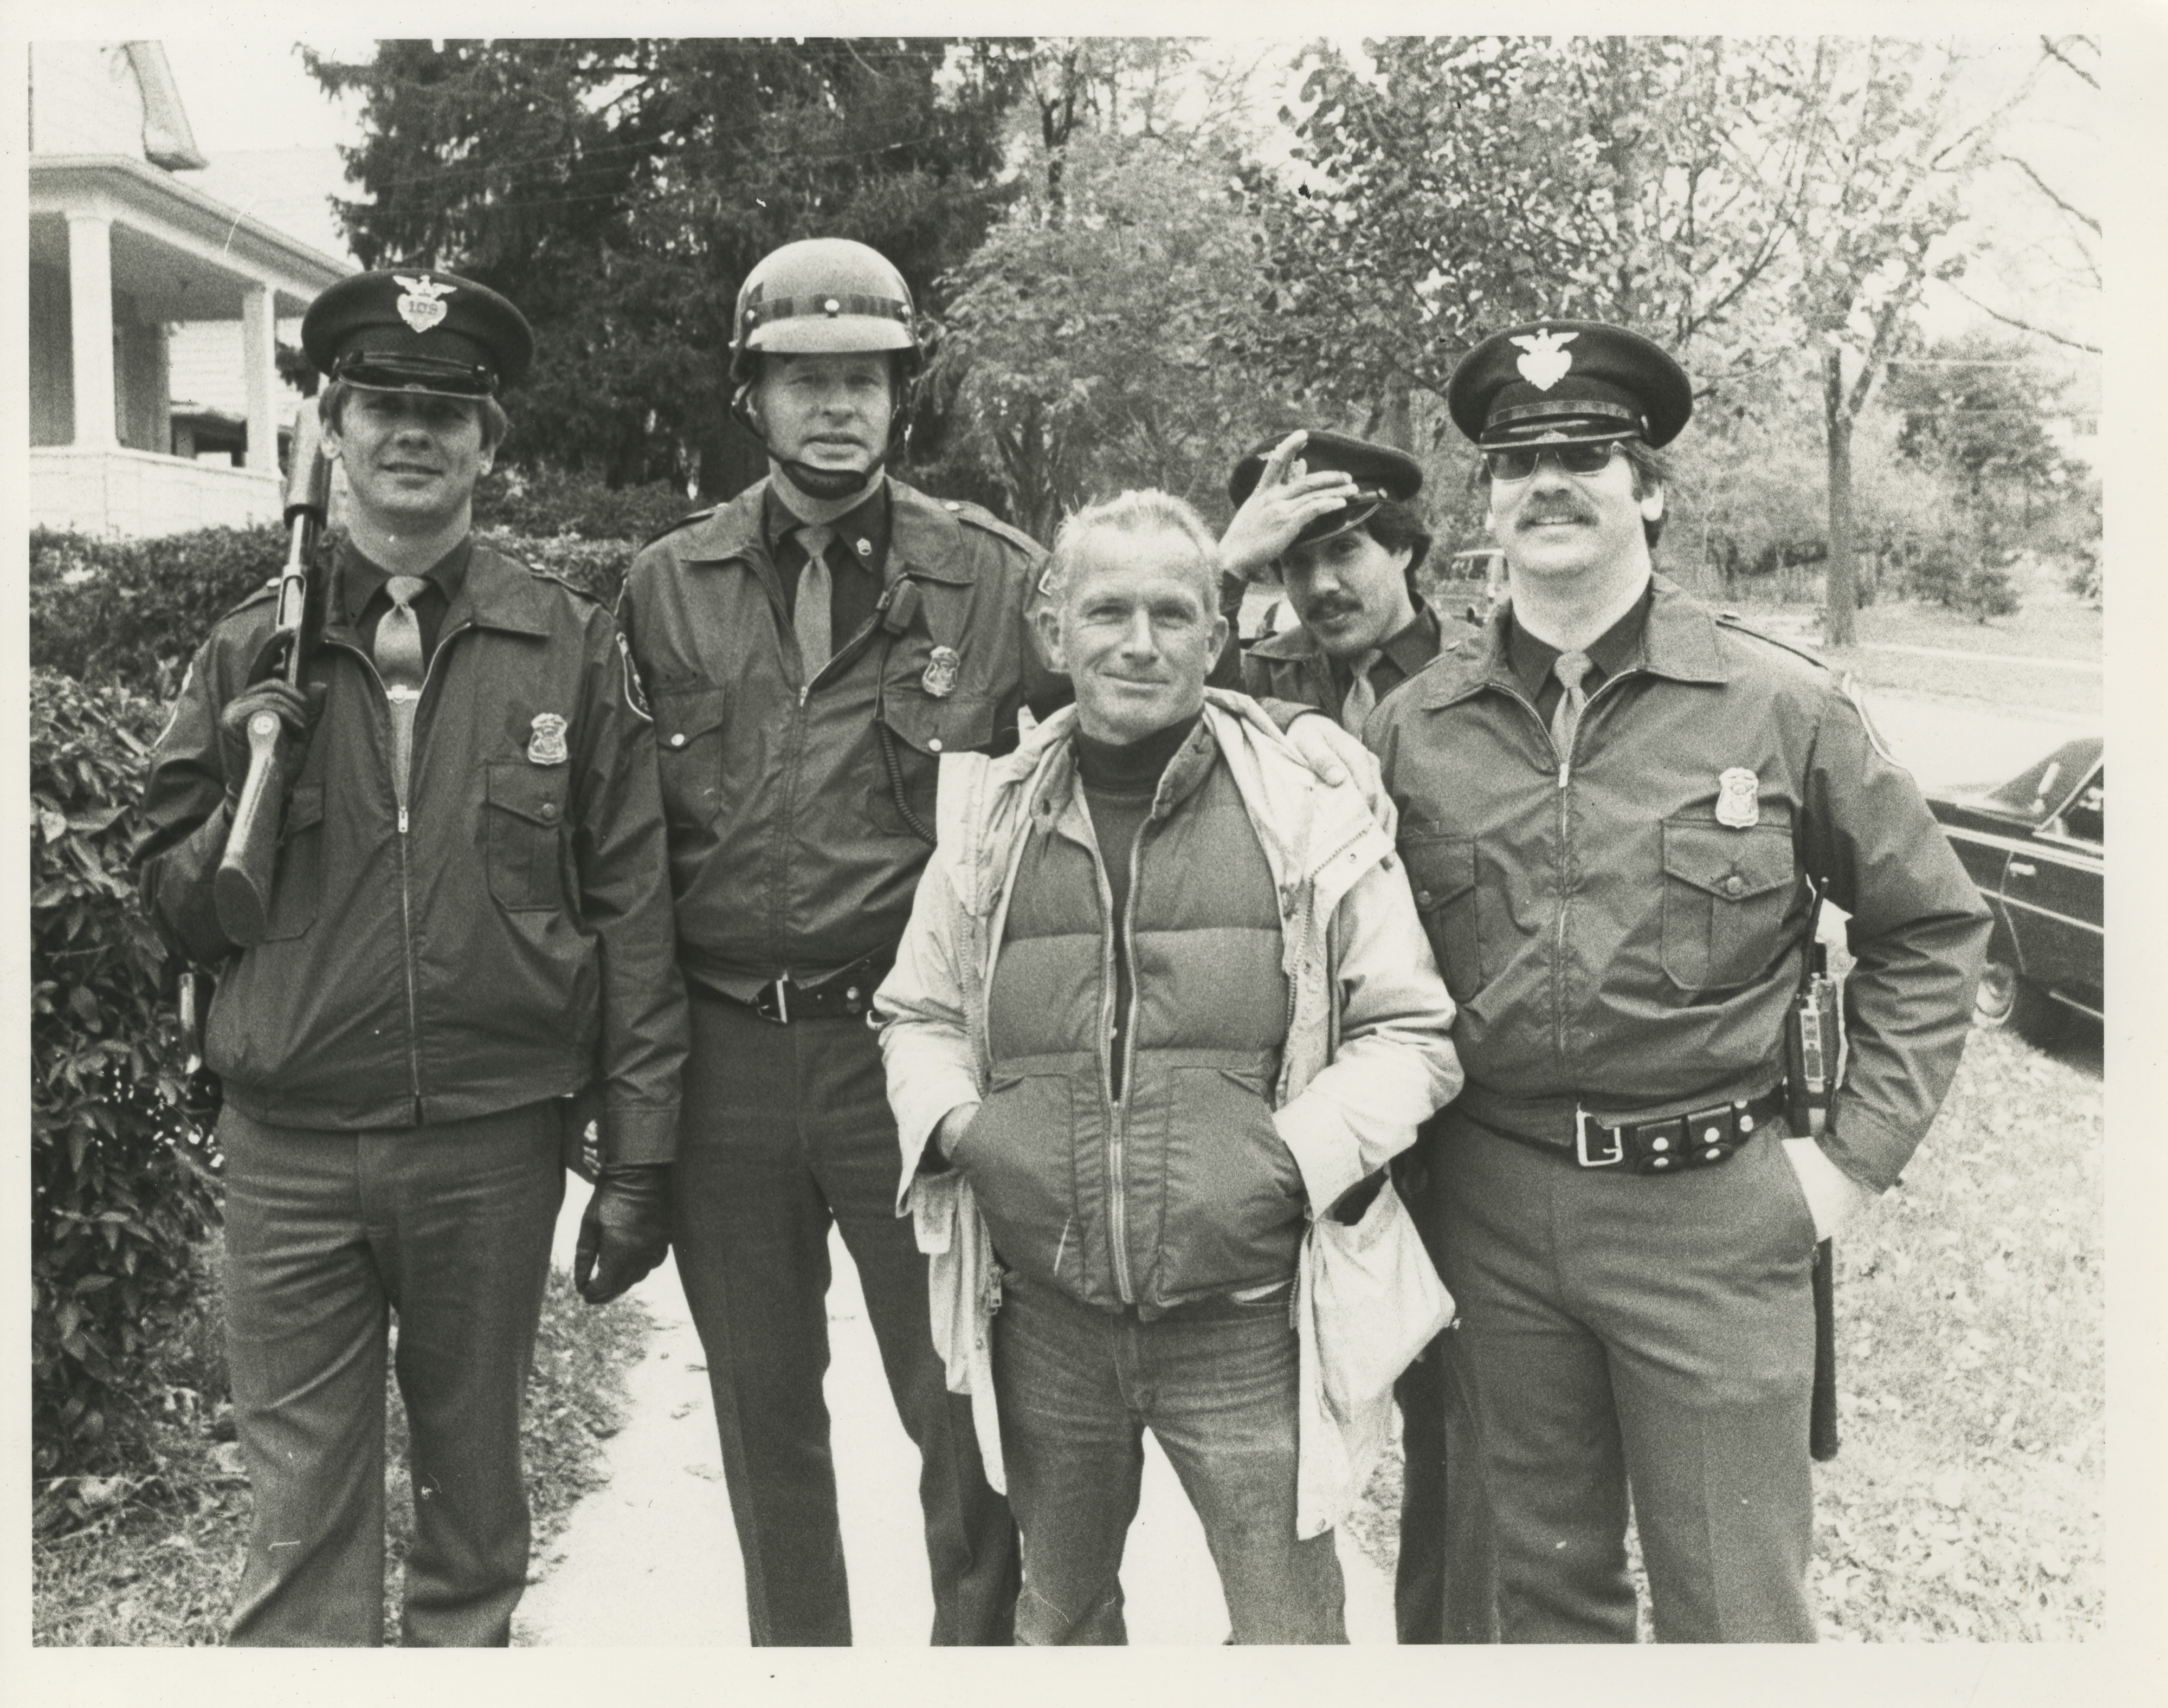 Jack Stubbs with Some Boys in Blue, October 1982 image